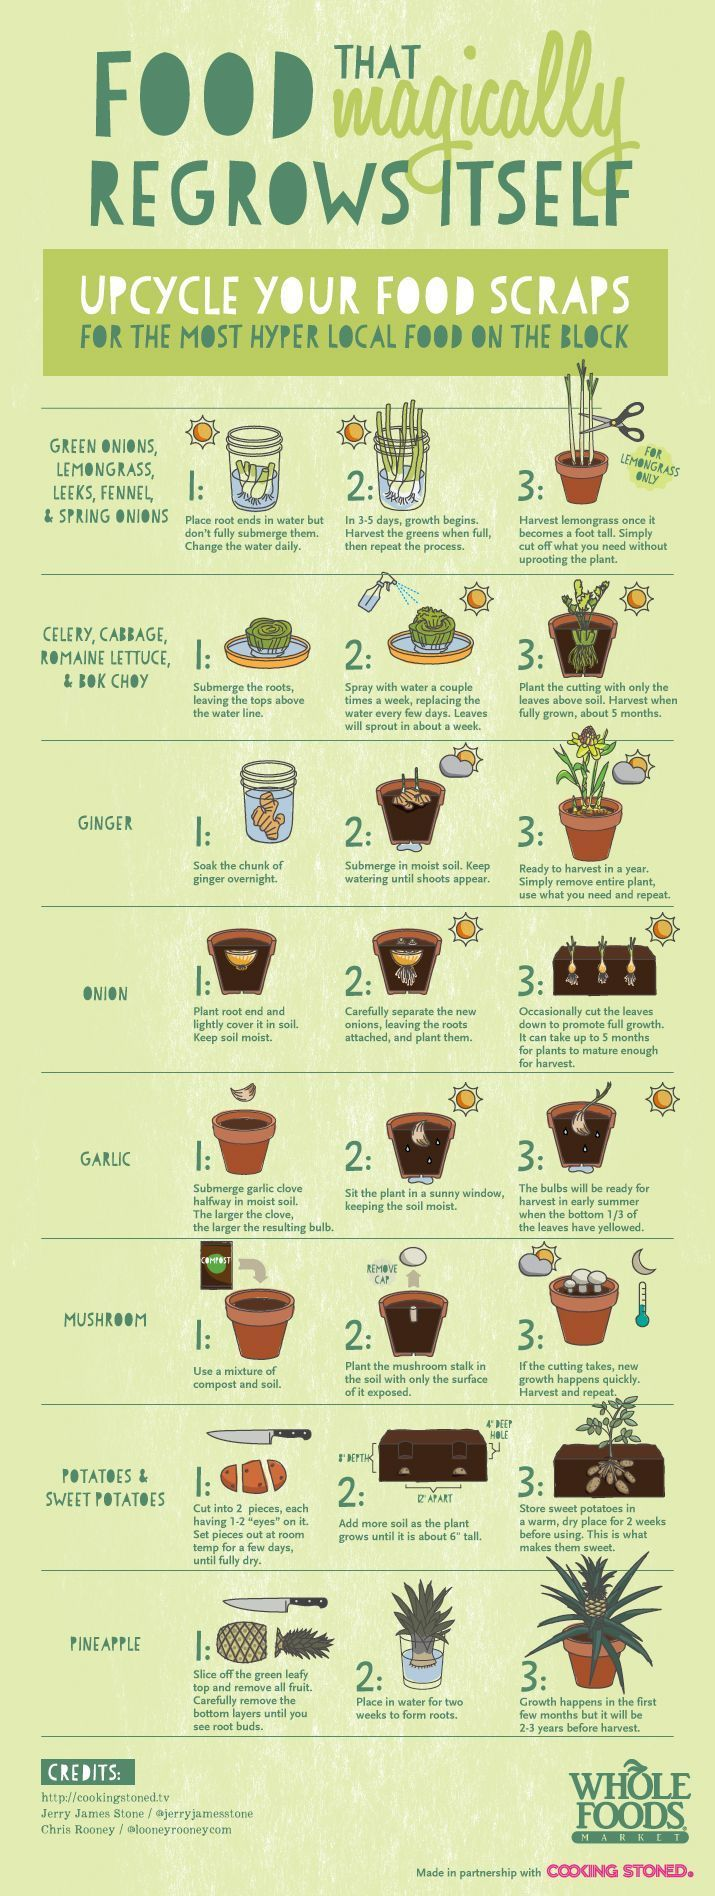 Be sure to upcycle your food scraps... All of this food will magically regrow…